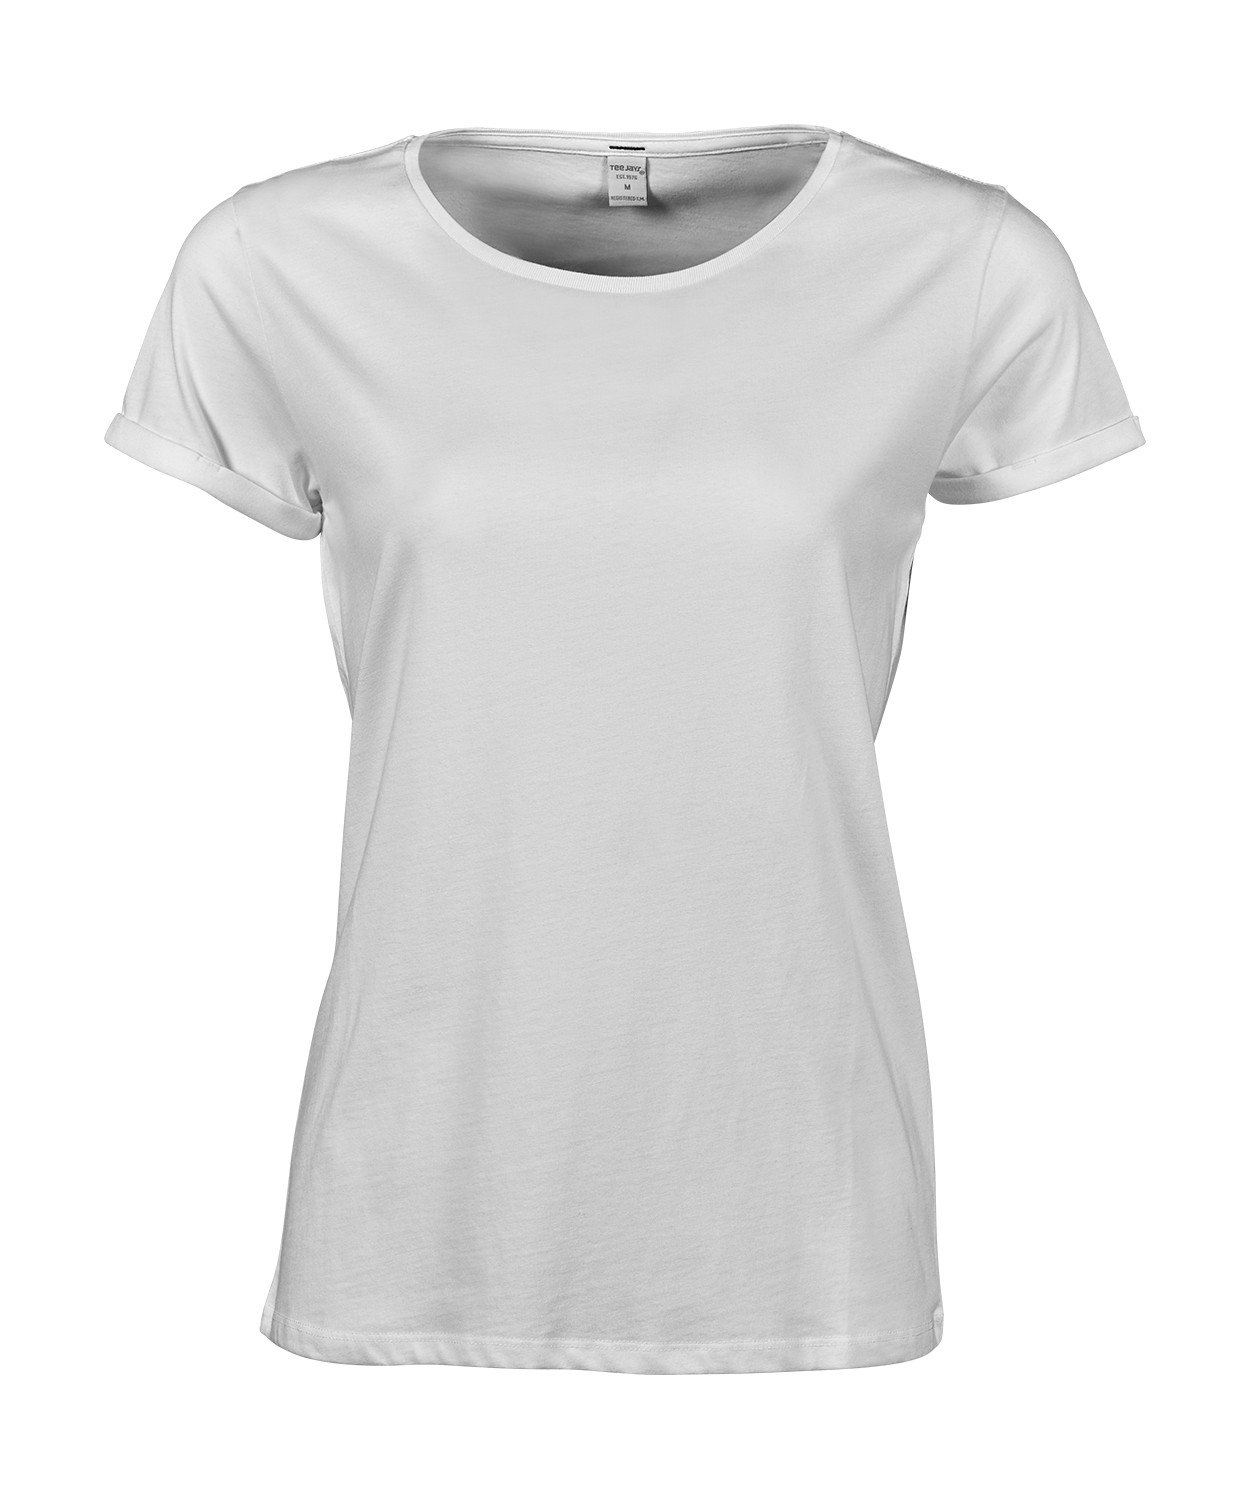 T-shirt-manches-courtes-Femme-manches-enroulees-5063-blanc